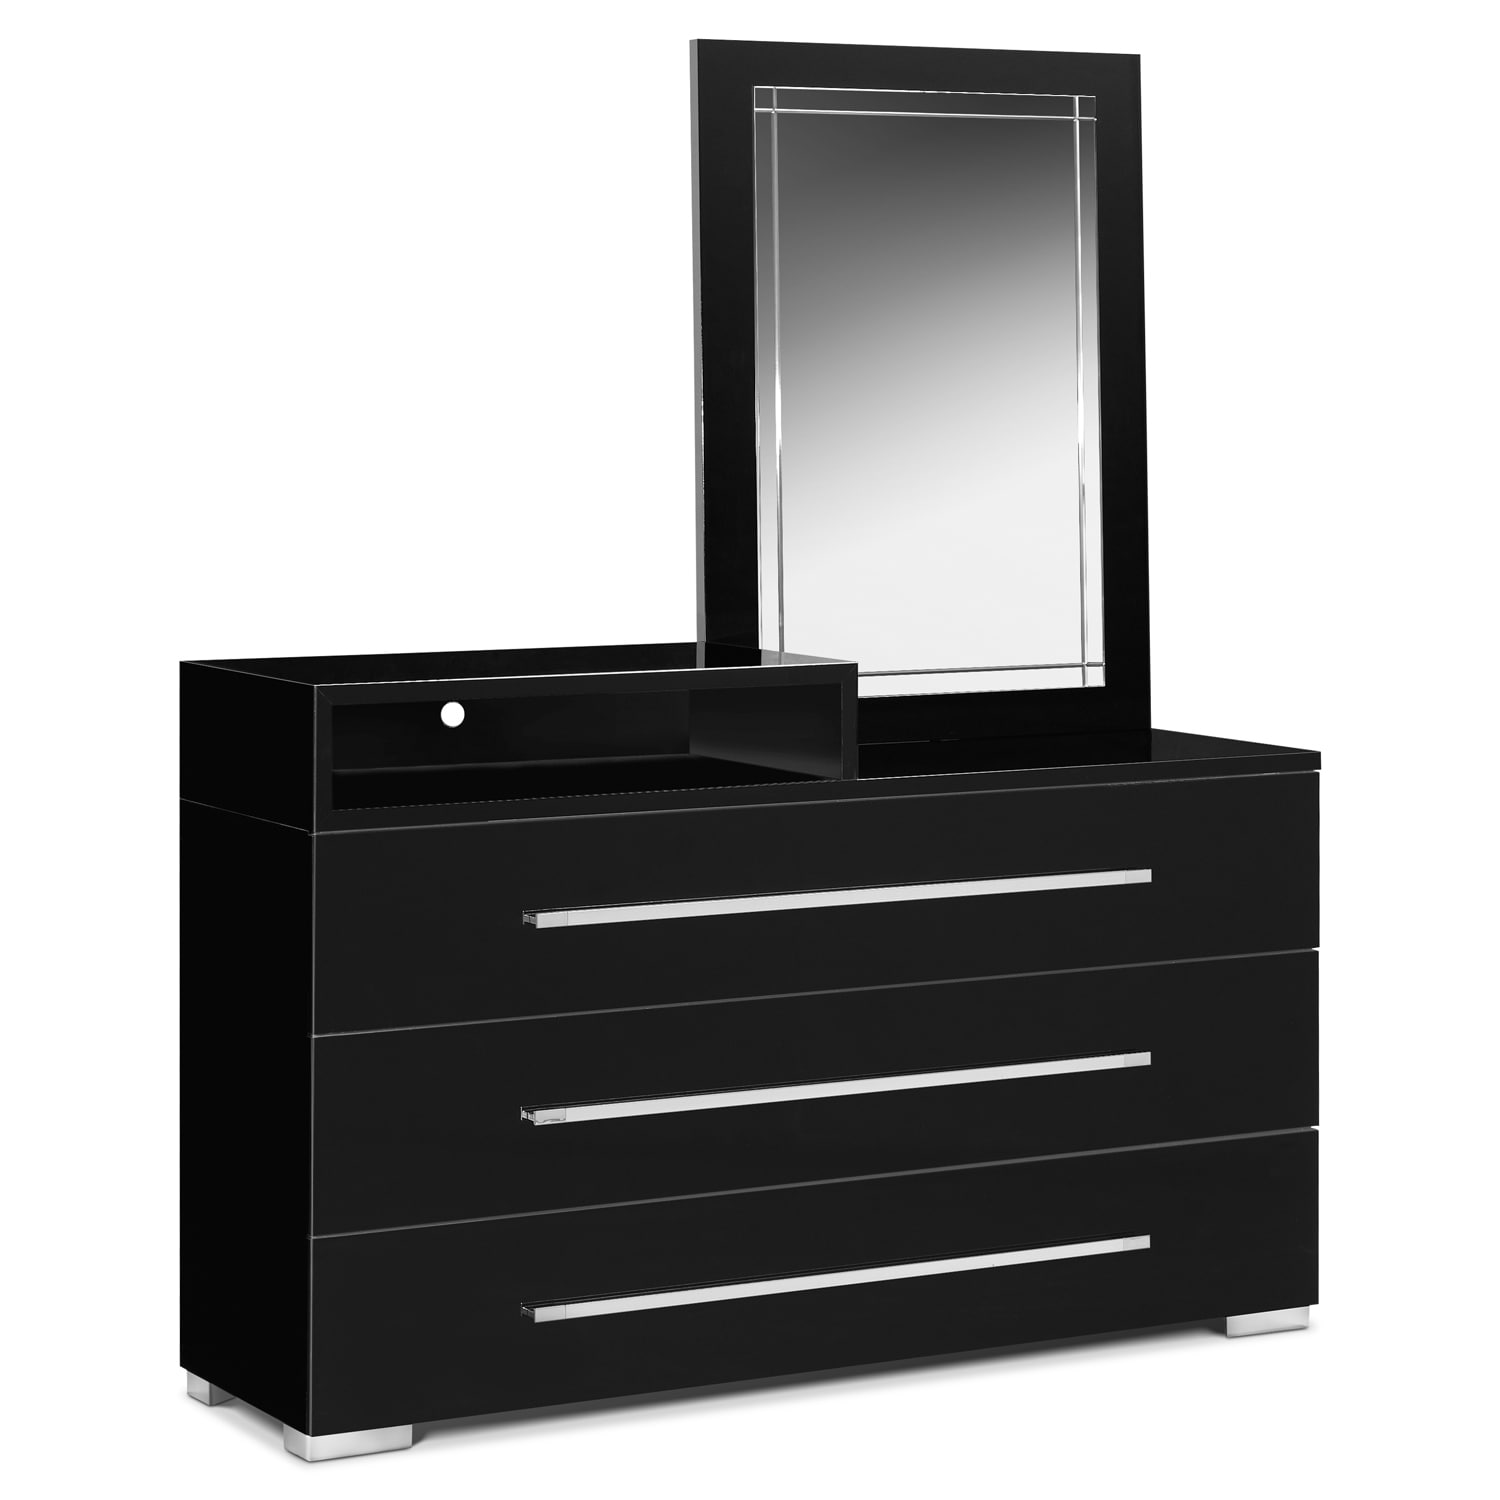 Dimora Dresser with Deck and Mirror - Black